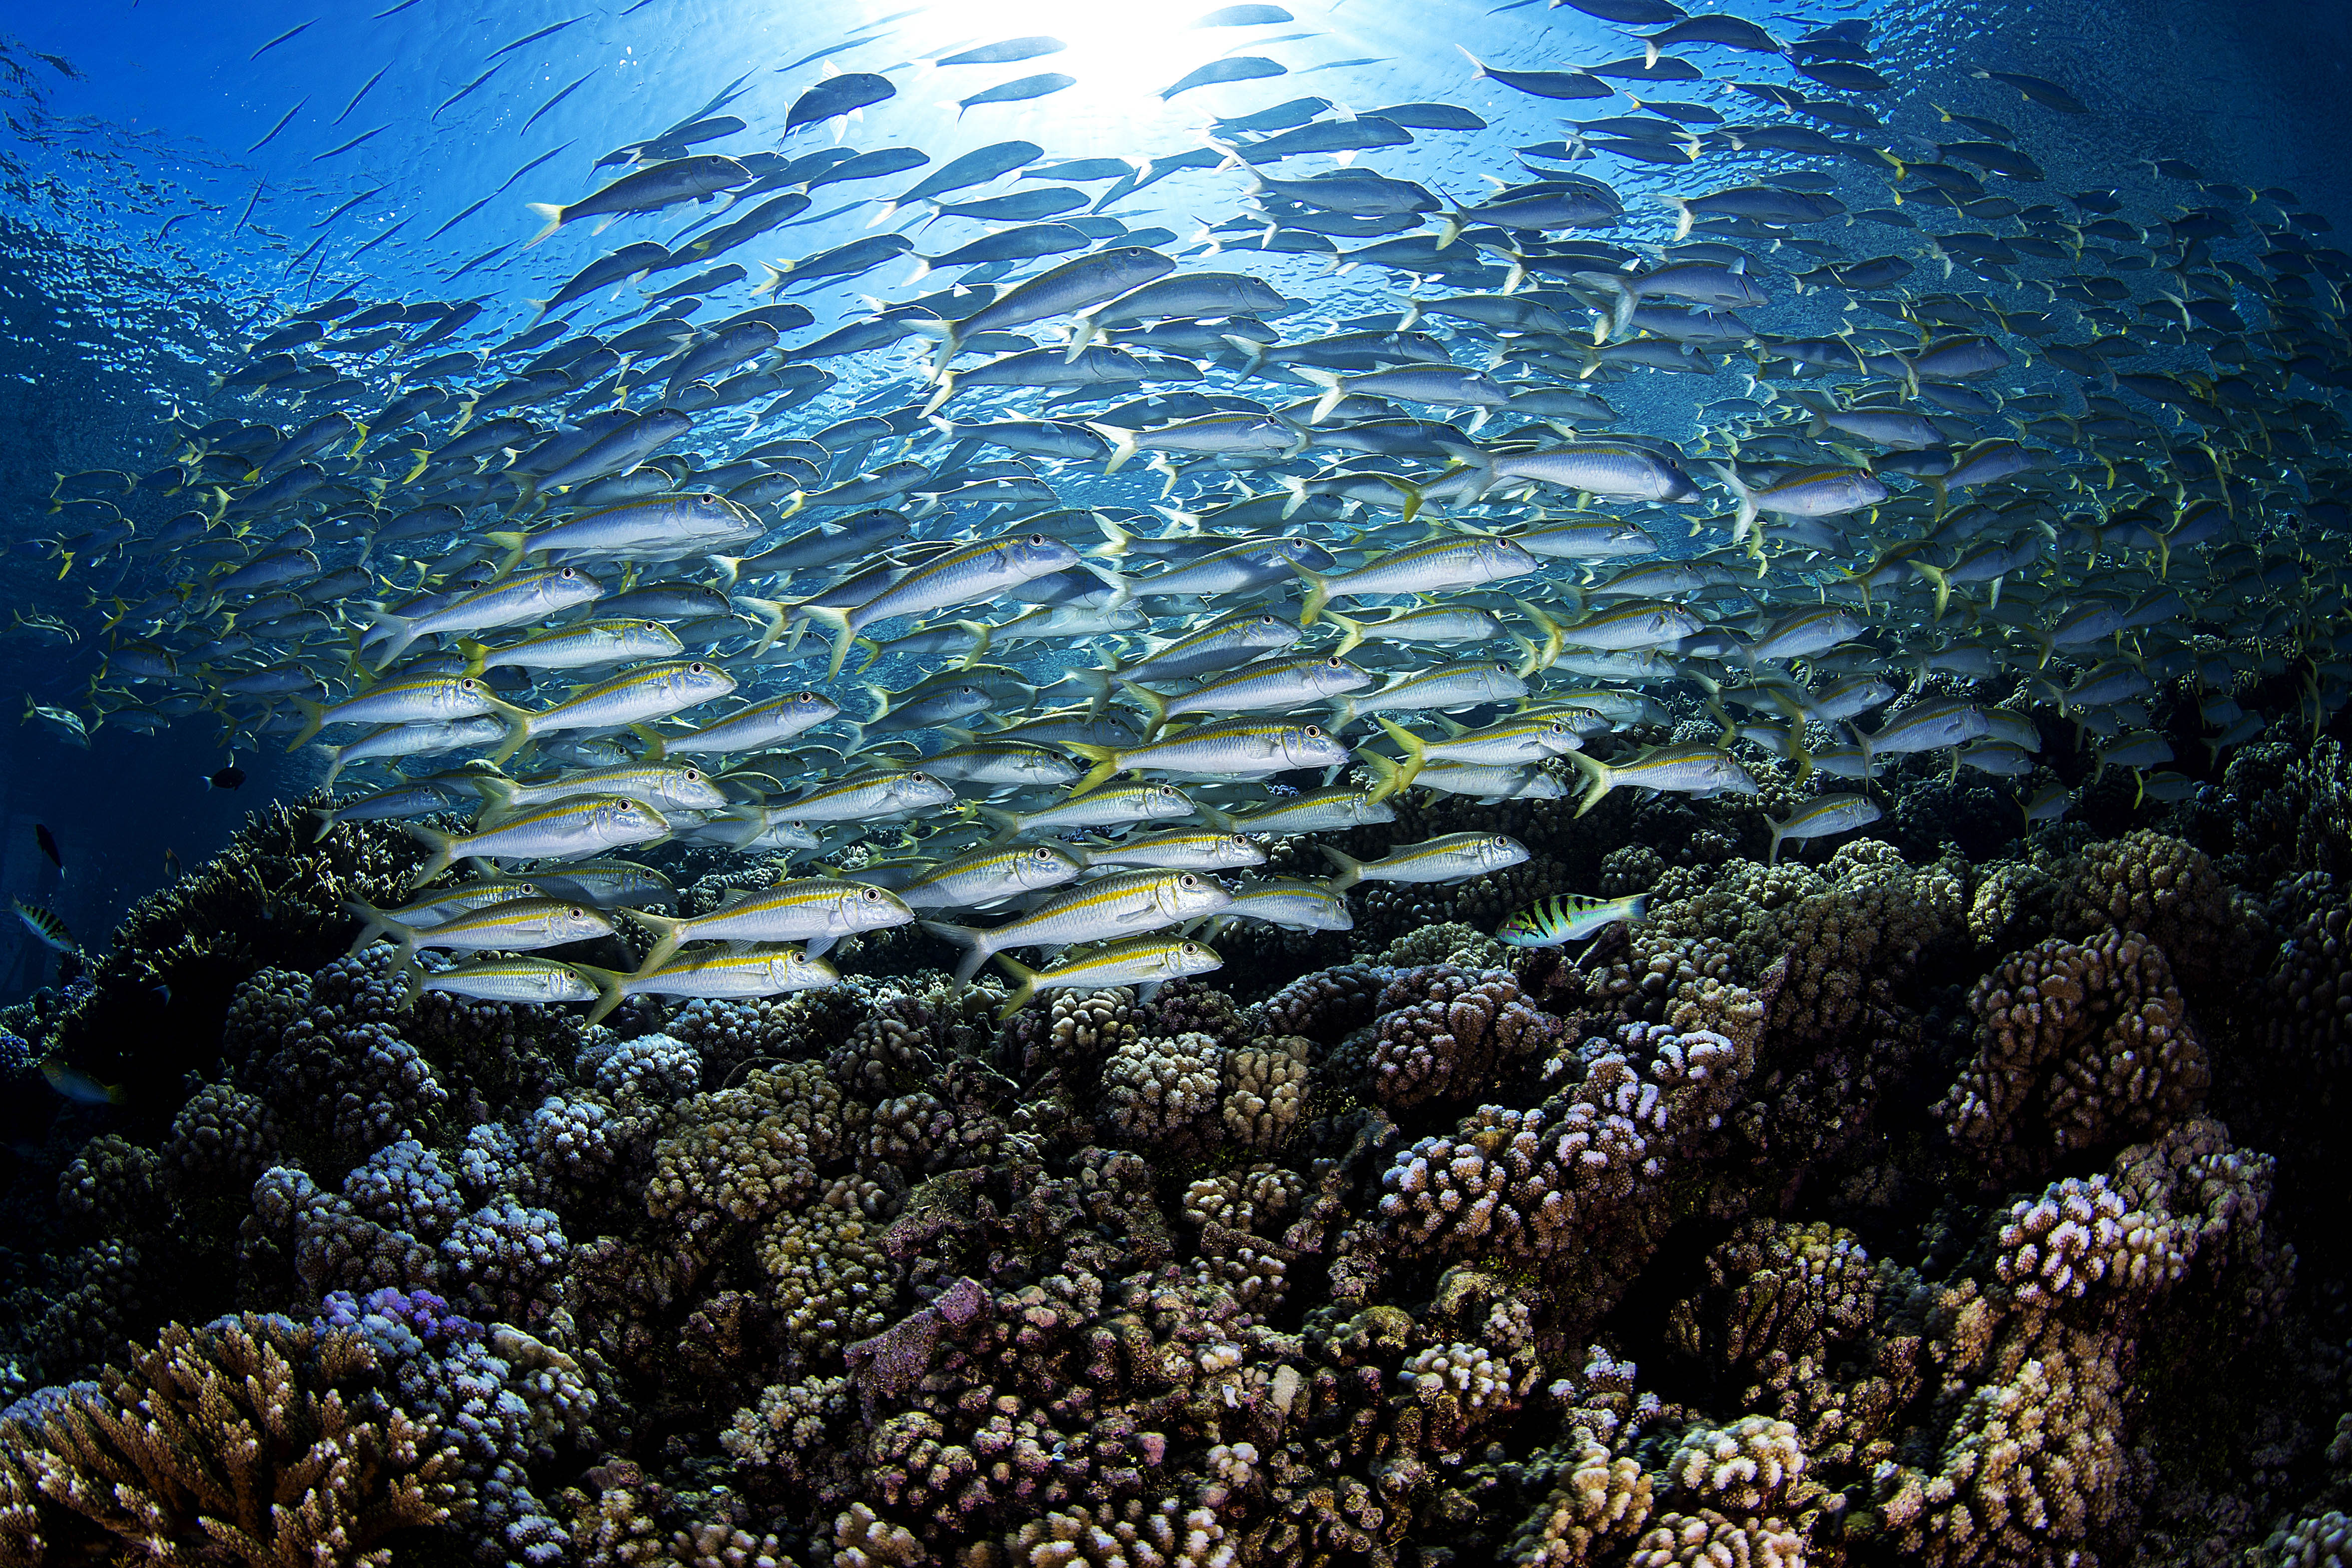 school of fish over hard coral reef